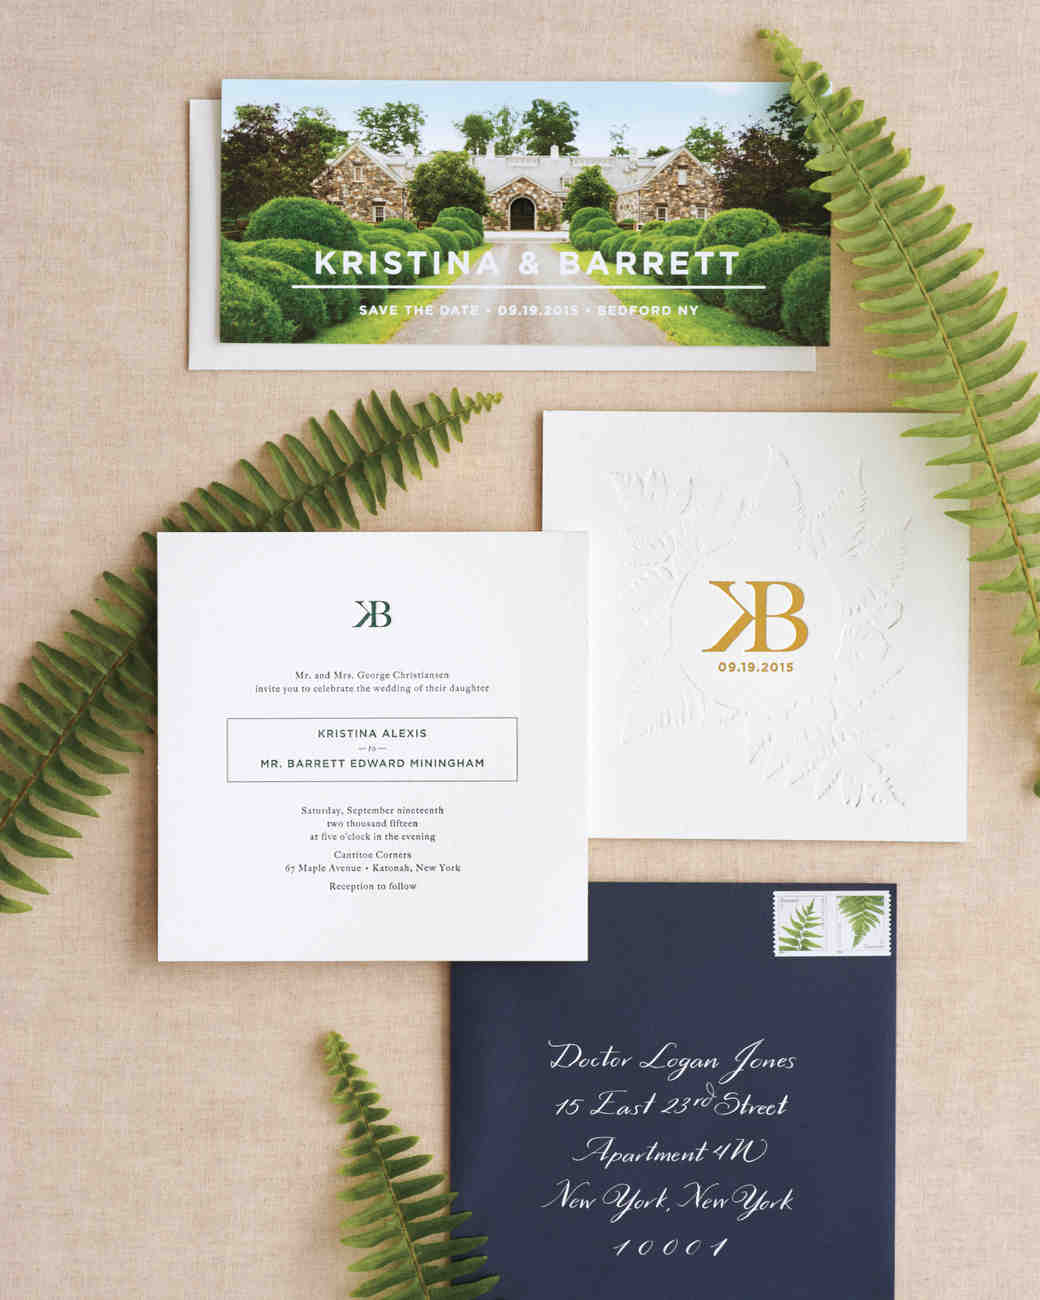 kristina-barrett-wedding-bedford-invitation-2-0125-r-d112650.jpg